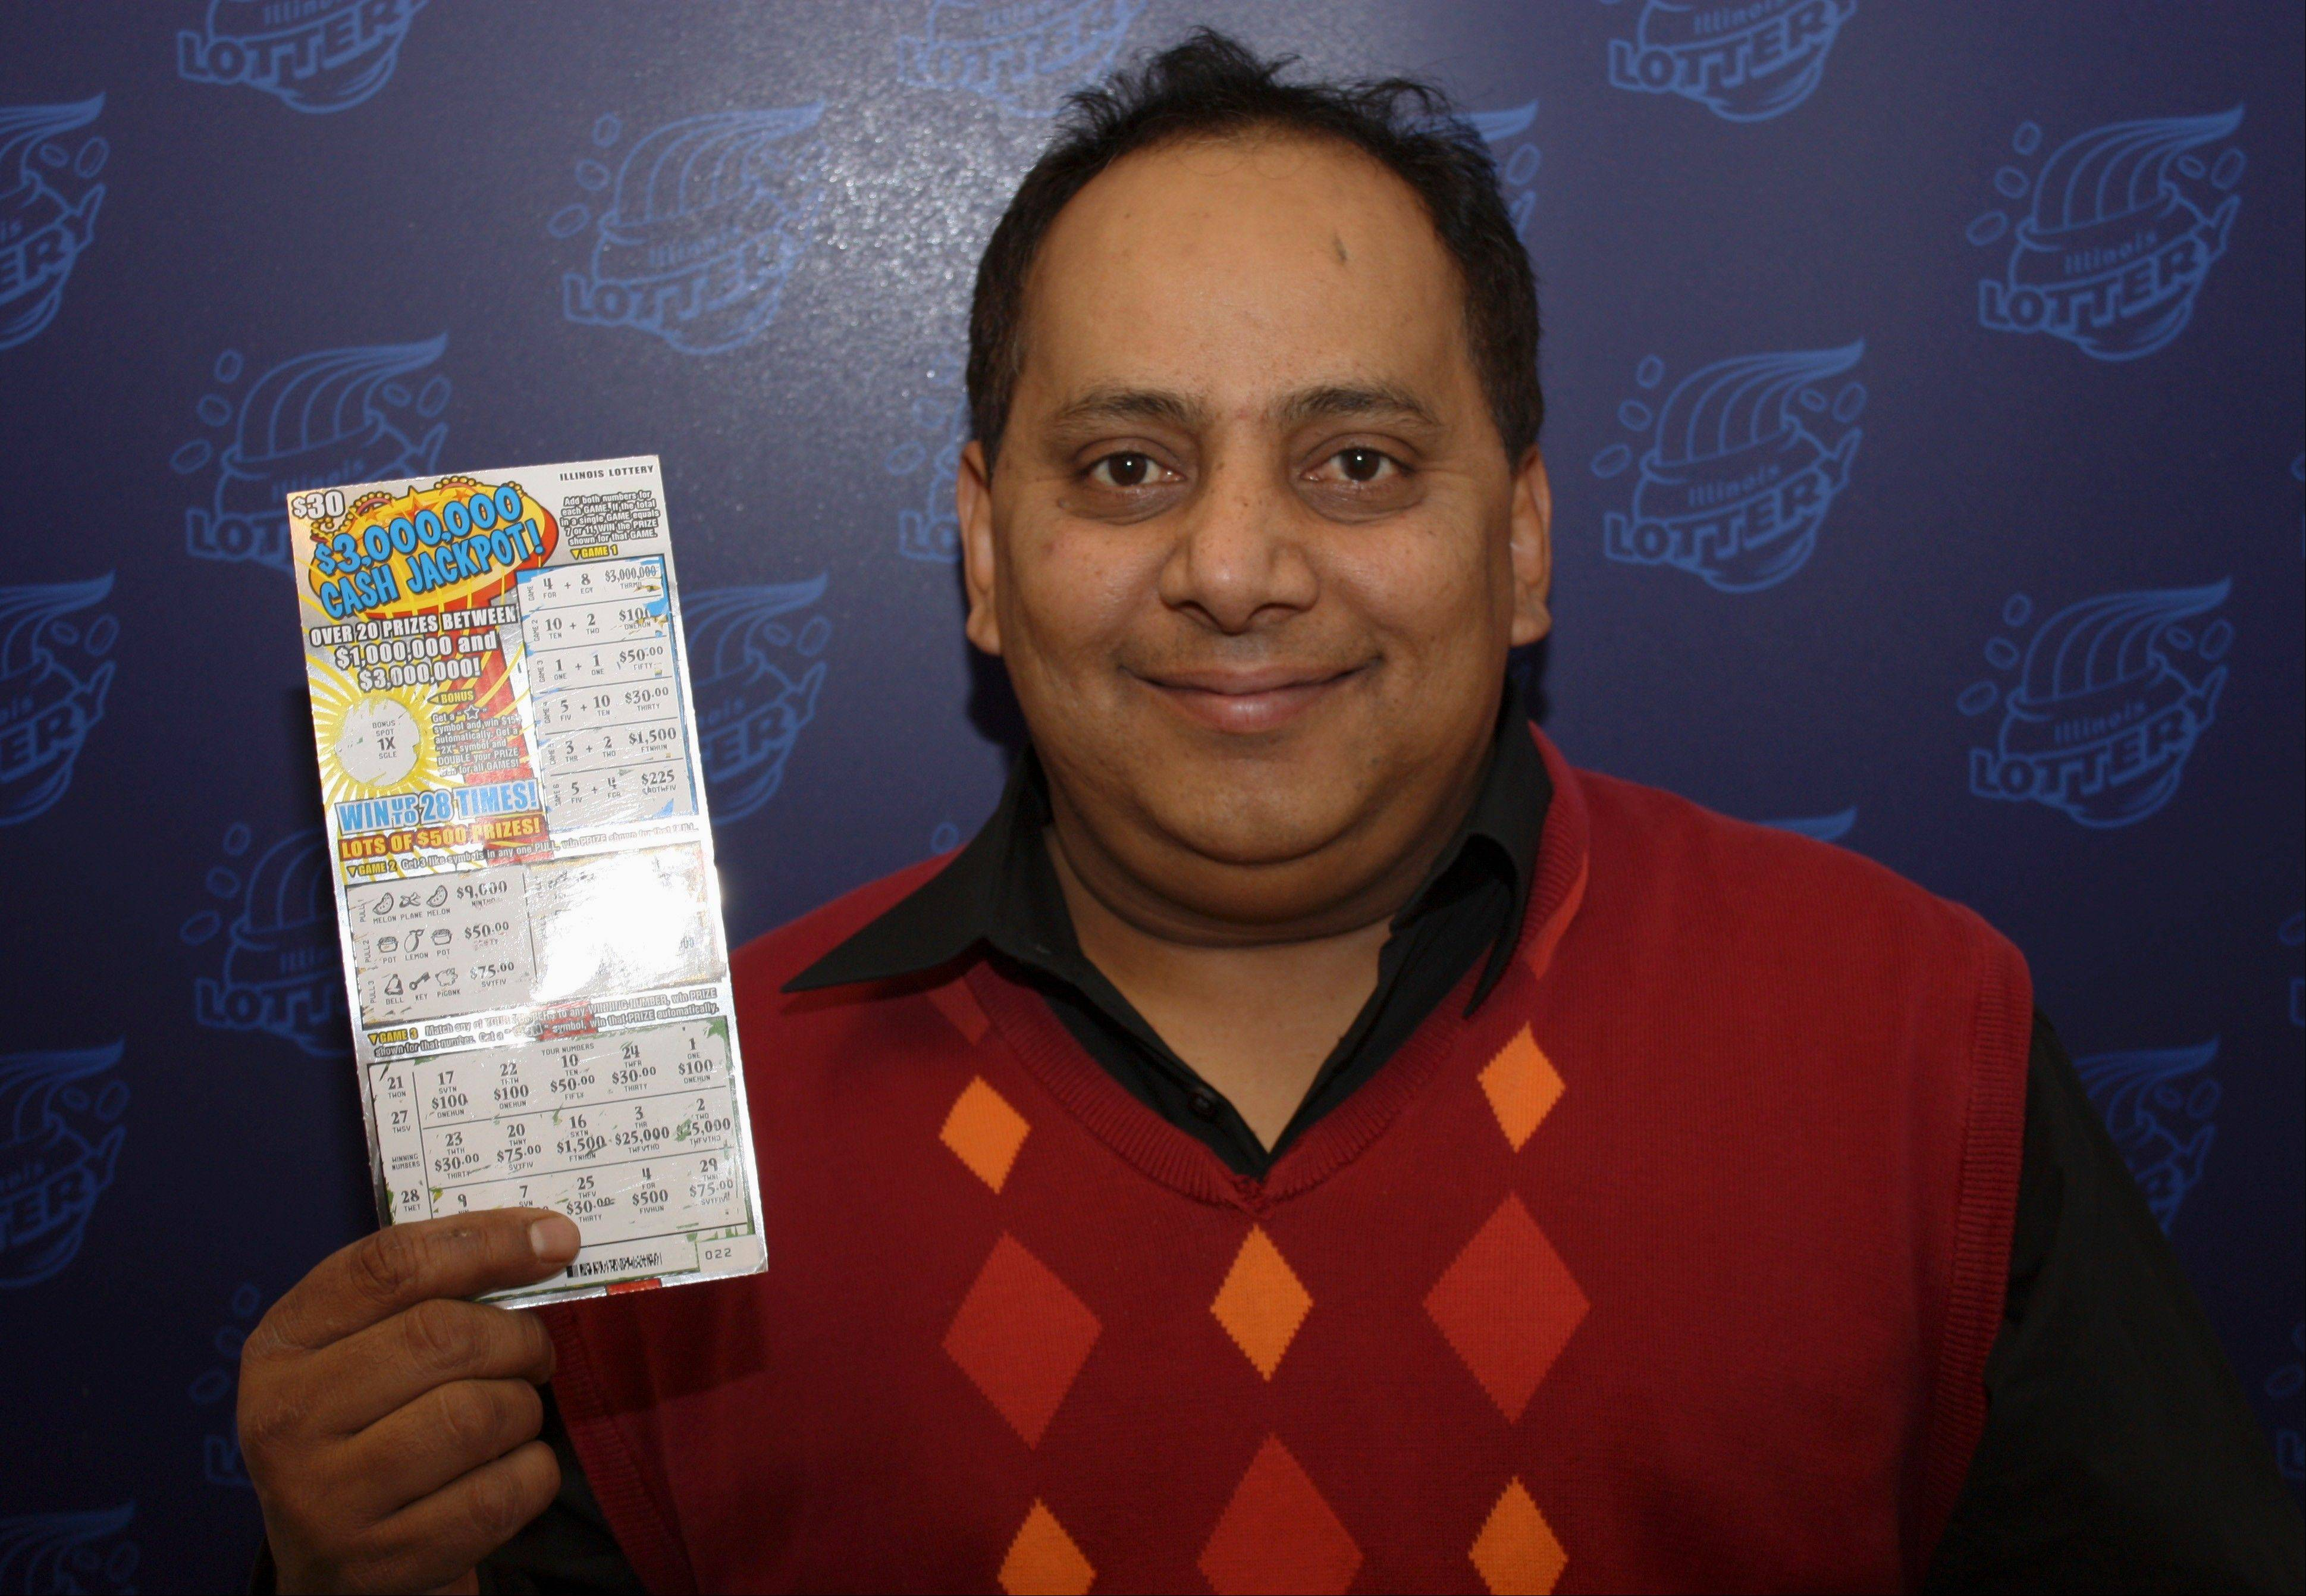 This undated photo provided by the Illinois Lottery shows Urooj Khan, 46, of Chicago's West Rogers Park neighborhood, posing with a winning lottery ticket. The Cook County medical examiner said Khan was fatally poisoned with cyanide July 20, 2012.